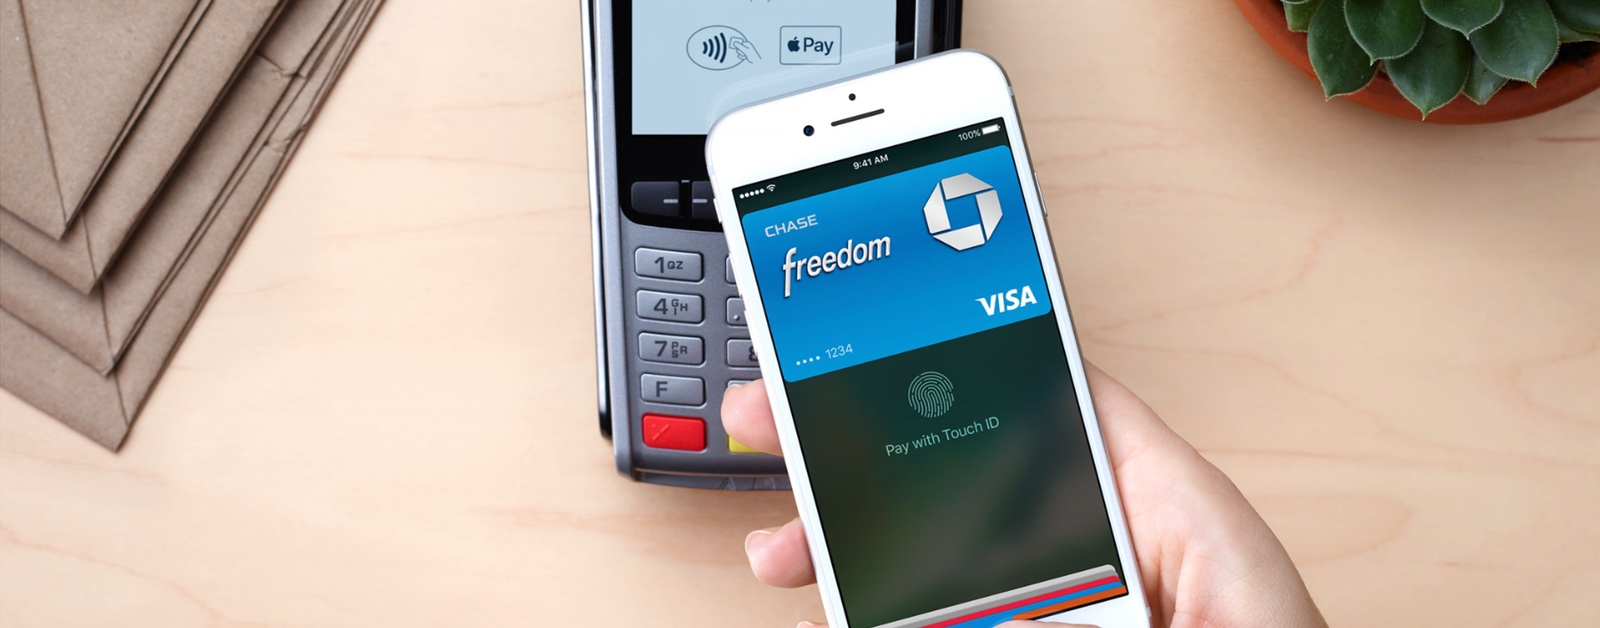 image of person using apple pay